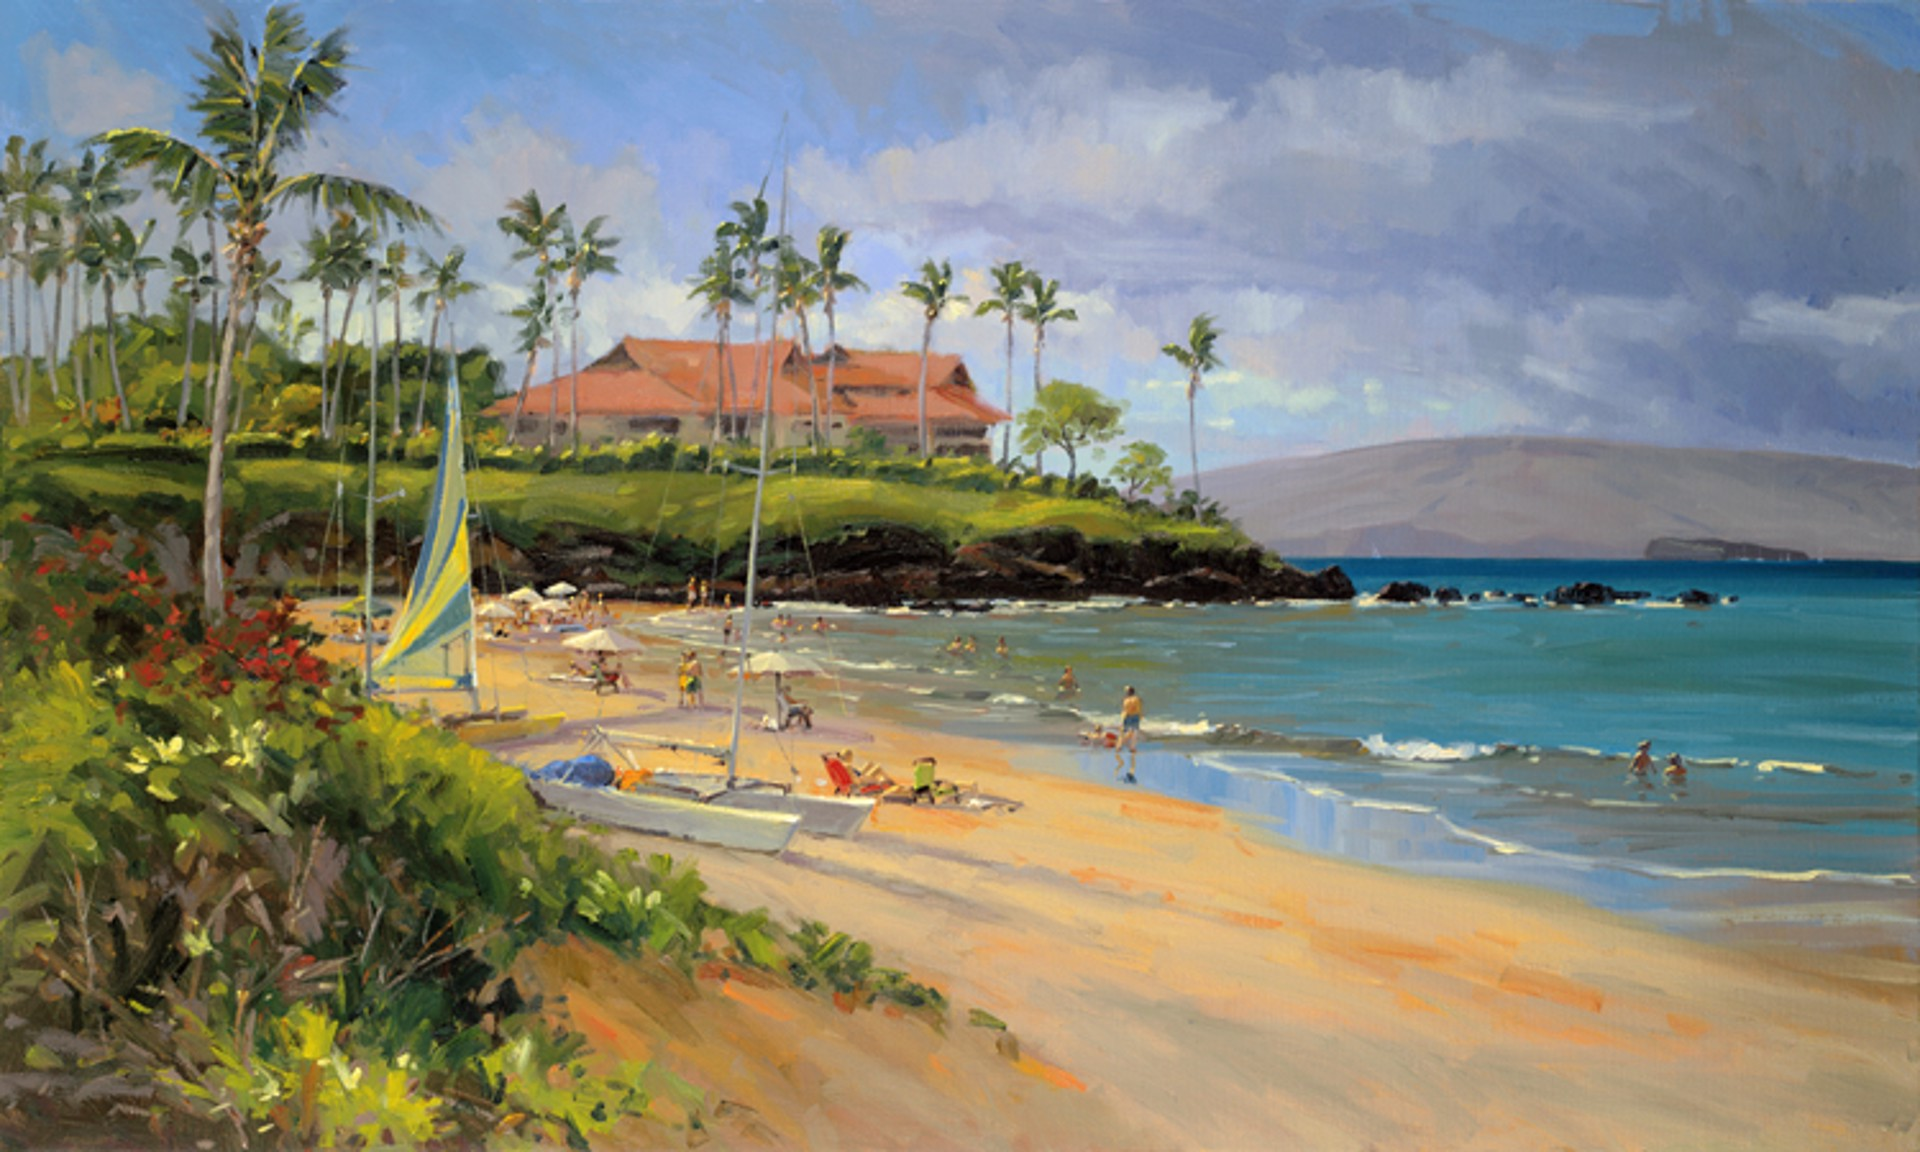 Beach Day At Wailea by Ronaldo Macedo